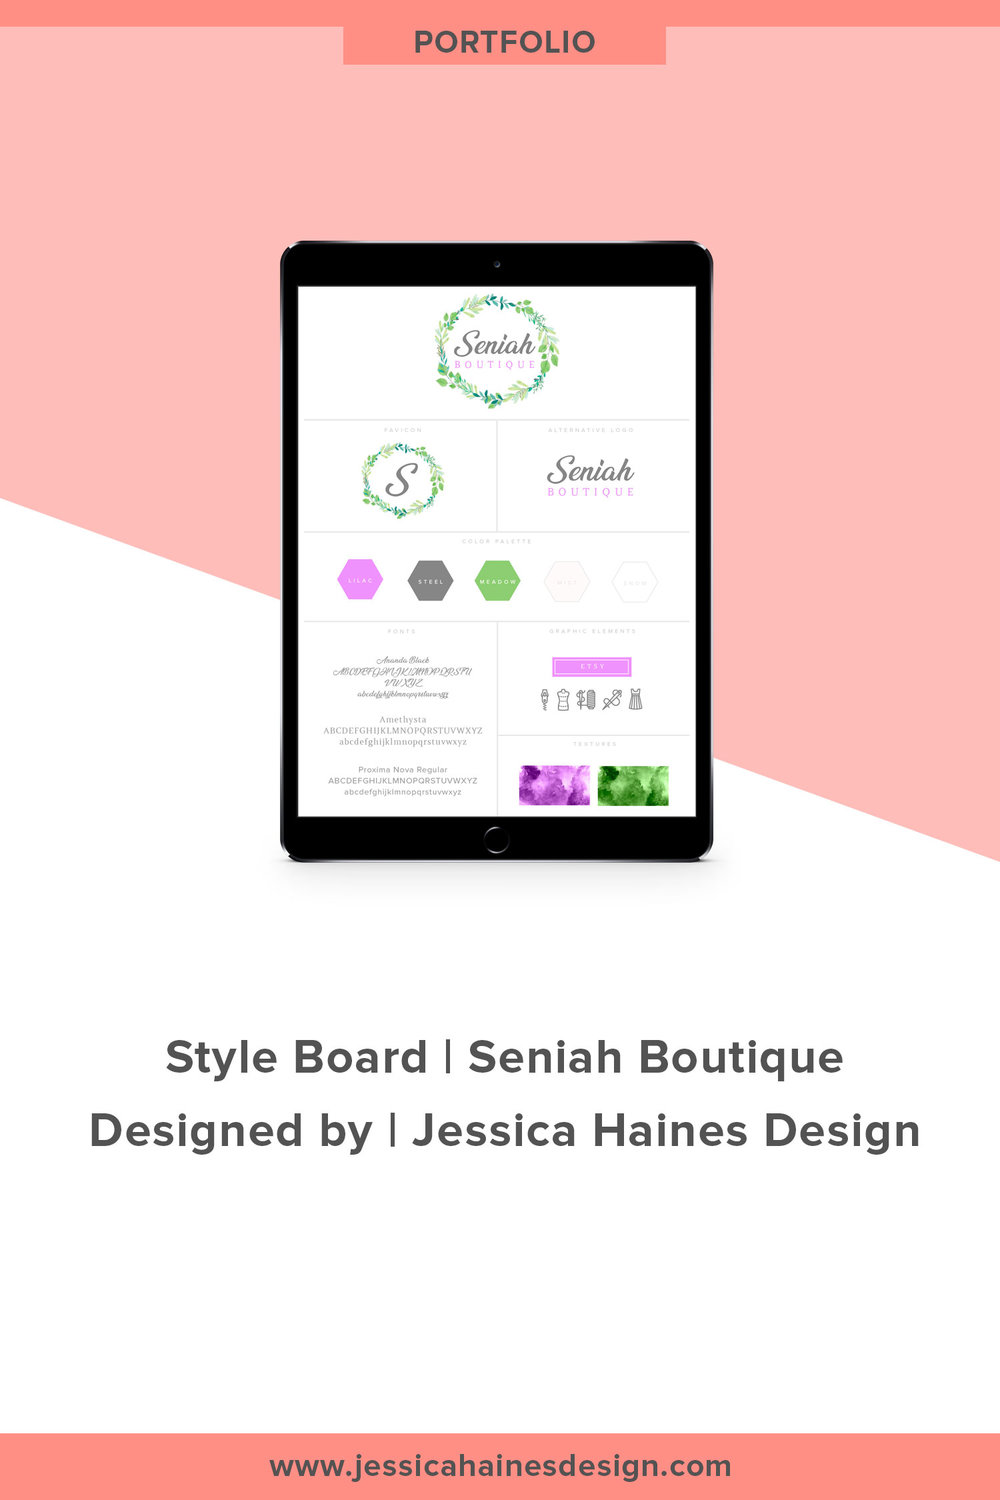 Seniah Boutique branding style board. This is the style board for a kids boutique clothing store. Want to take your brand to the next level with a custom logo and brand style board? Click through to find out how I can help you with a brand refresh    www.jessicahainesdesign.com